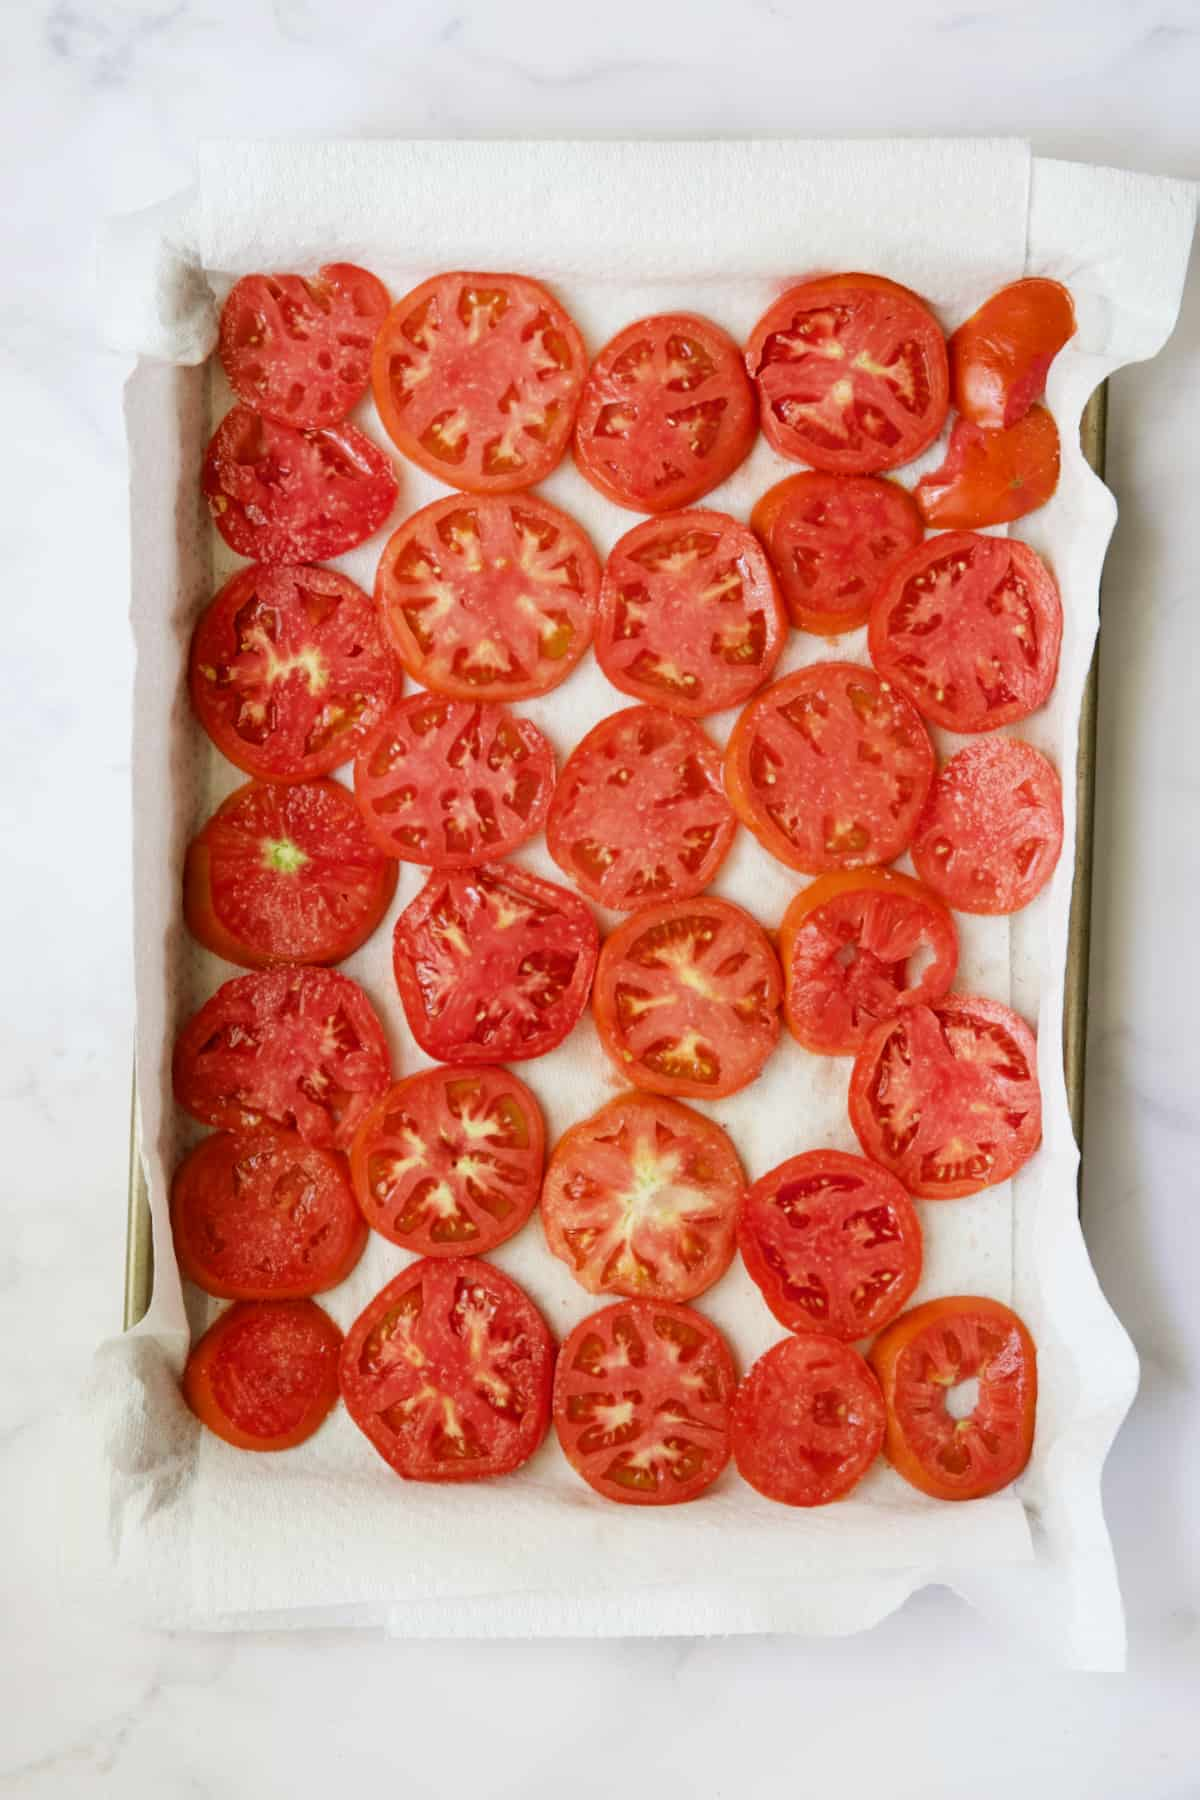 Tomato slices on paper towel-lined baking sheet.